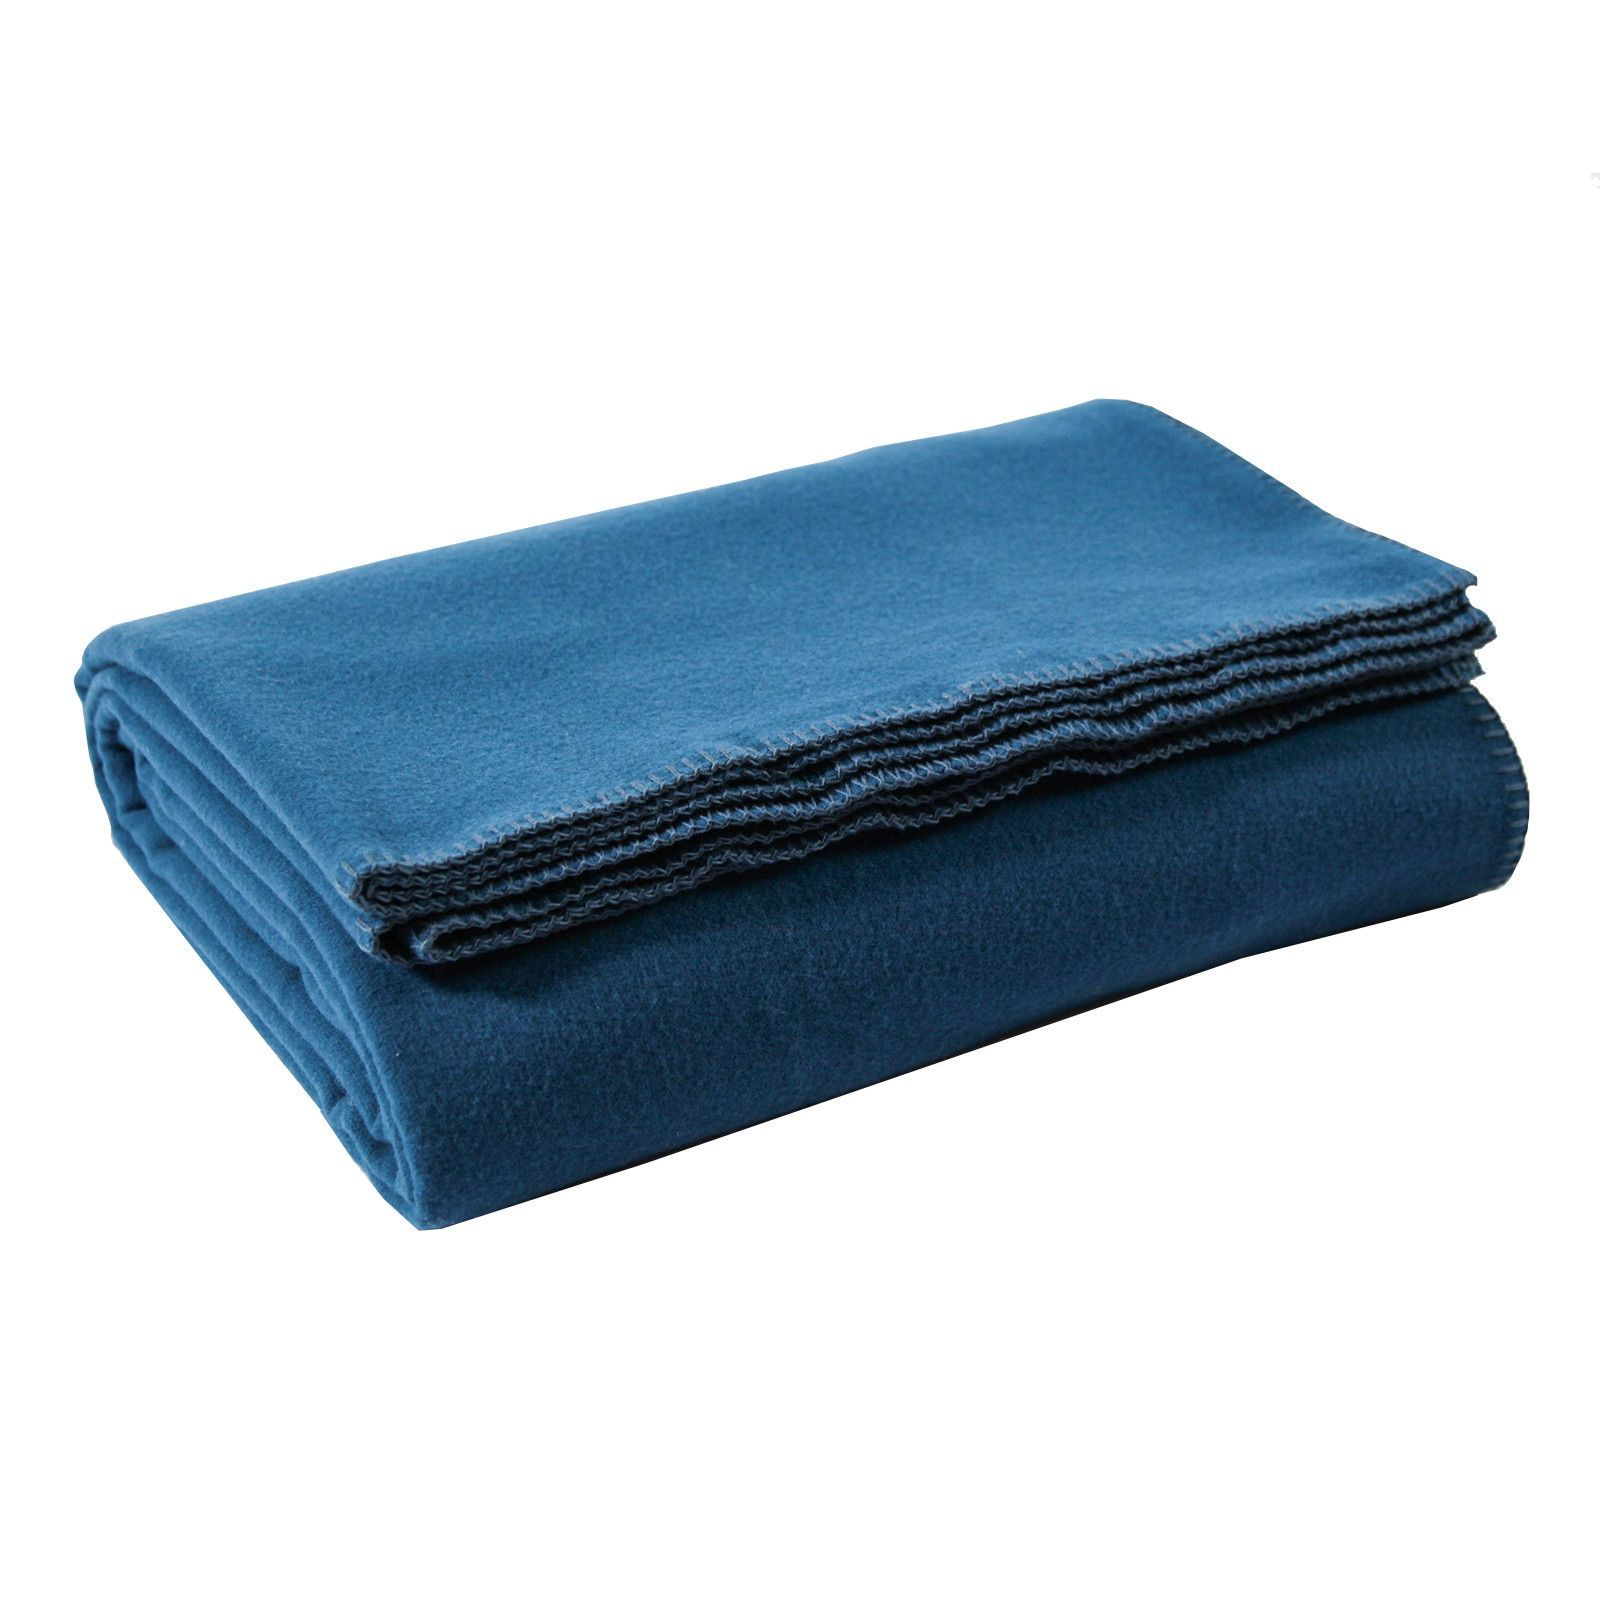 Ultra-Fine Merino Blanket, Limited Edition - Teal